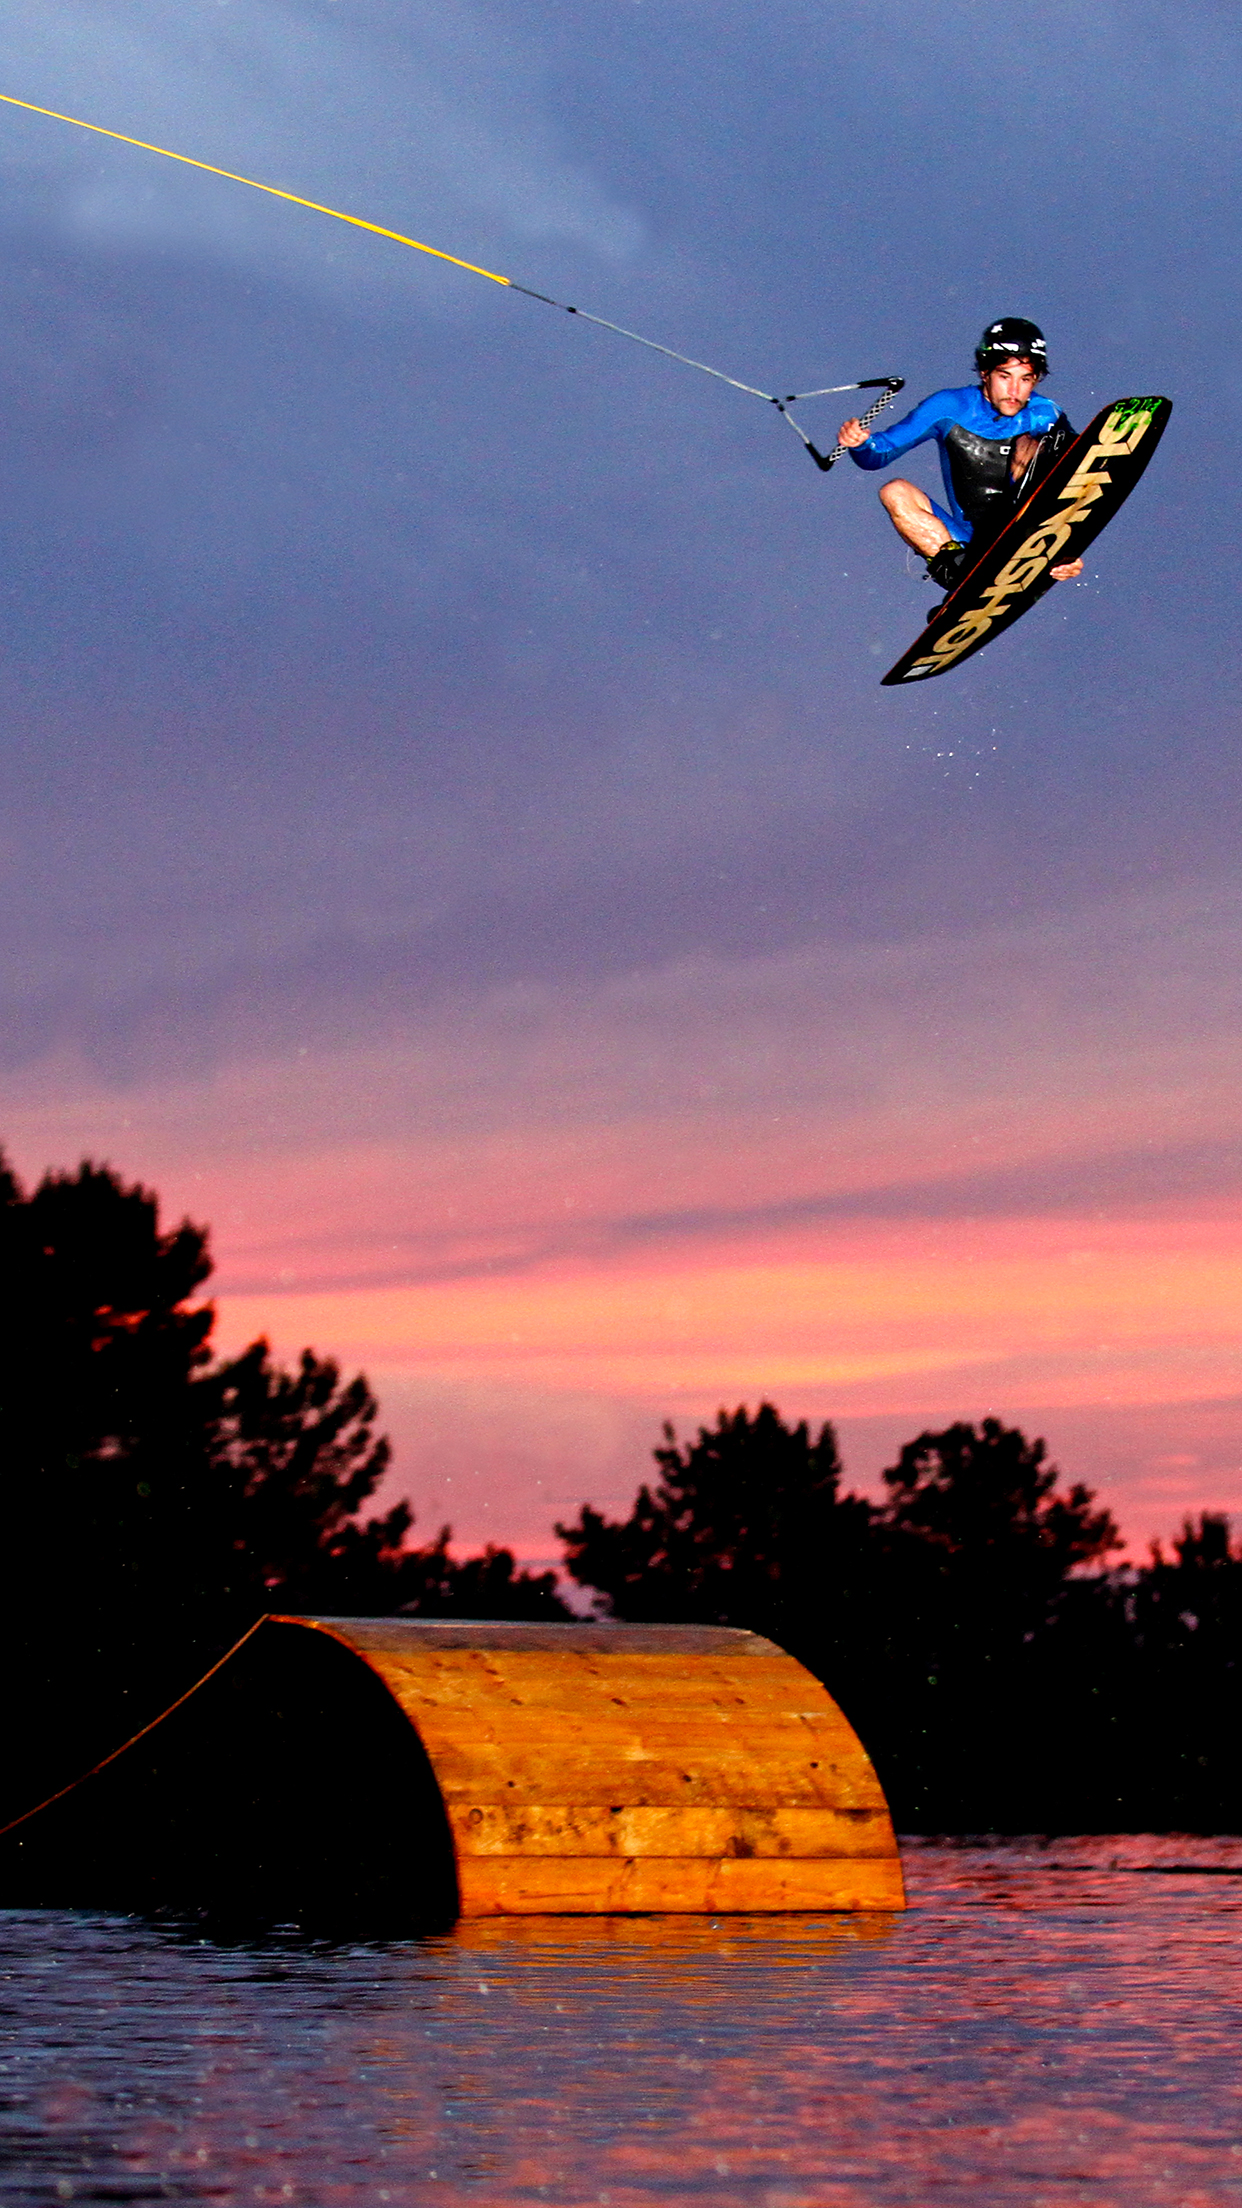 Wakeboard Mat Montoro 3Wallpapers iPhone Parallax Les 3 Wallpapers iPhone du jour (16/07/2015)